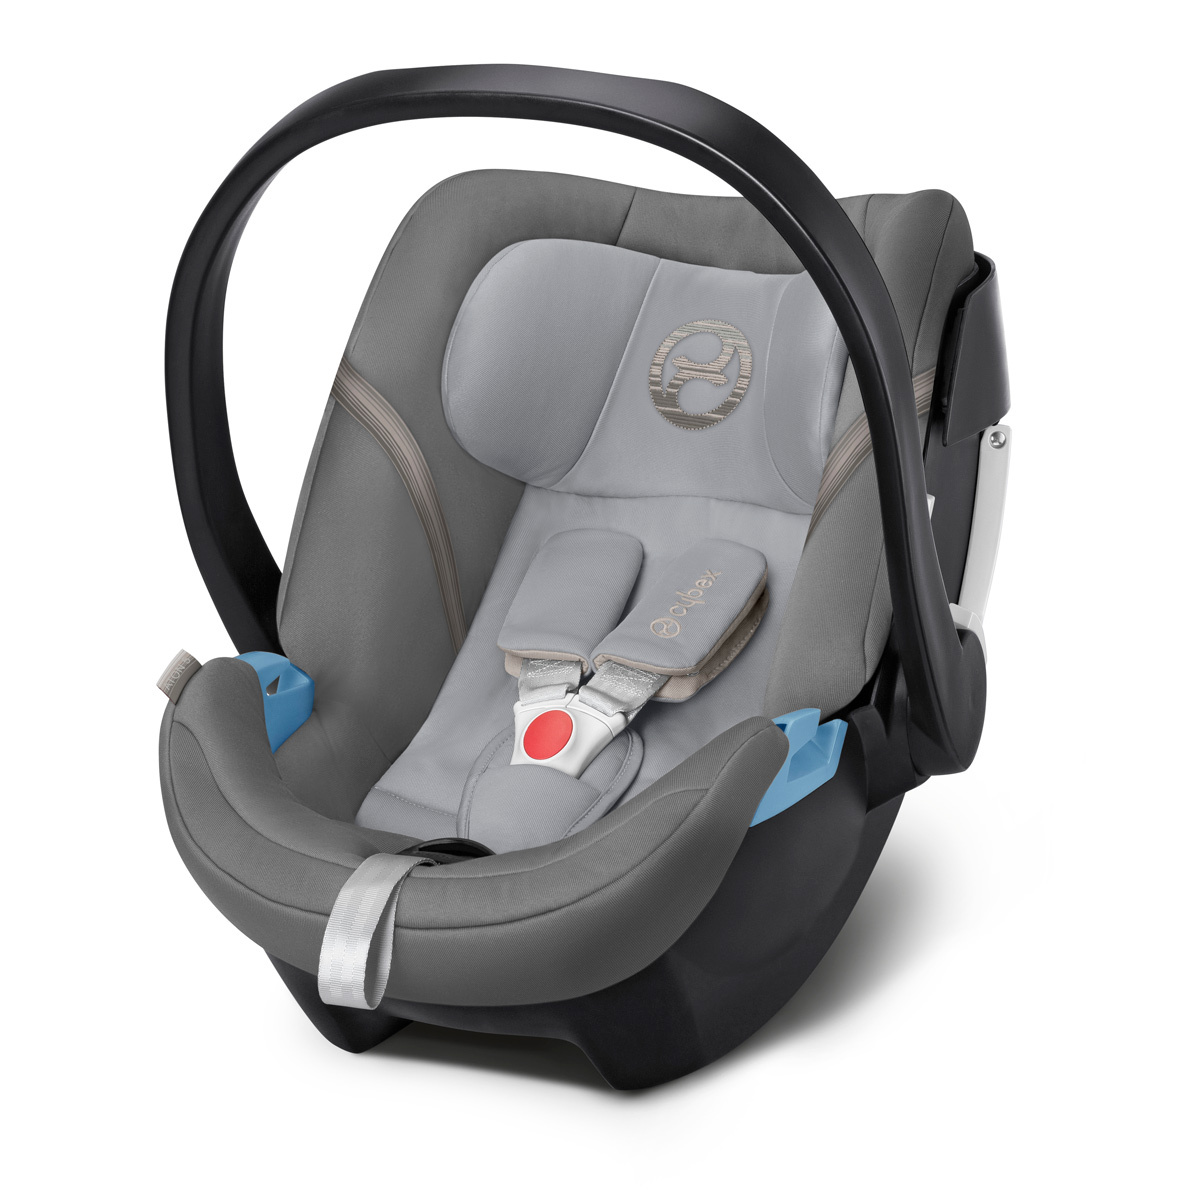 cybex si ge auto aton 5 isofix groupe 0 manhattan grey si ge auto et coque cybex sur l. Black Bedroom Furniture Sets. Home Design Ideas